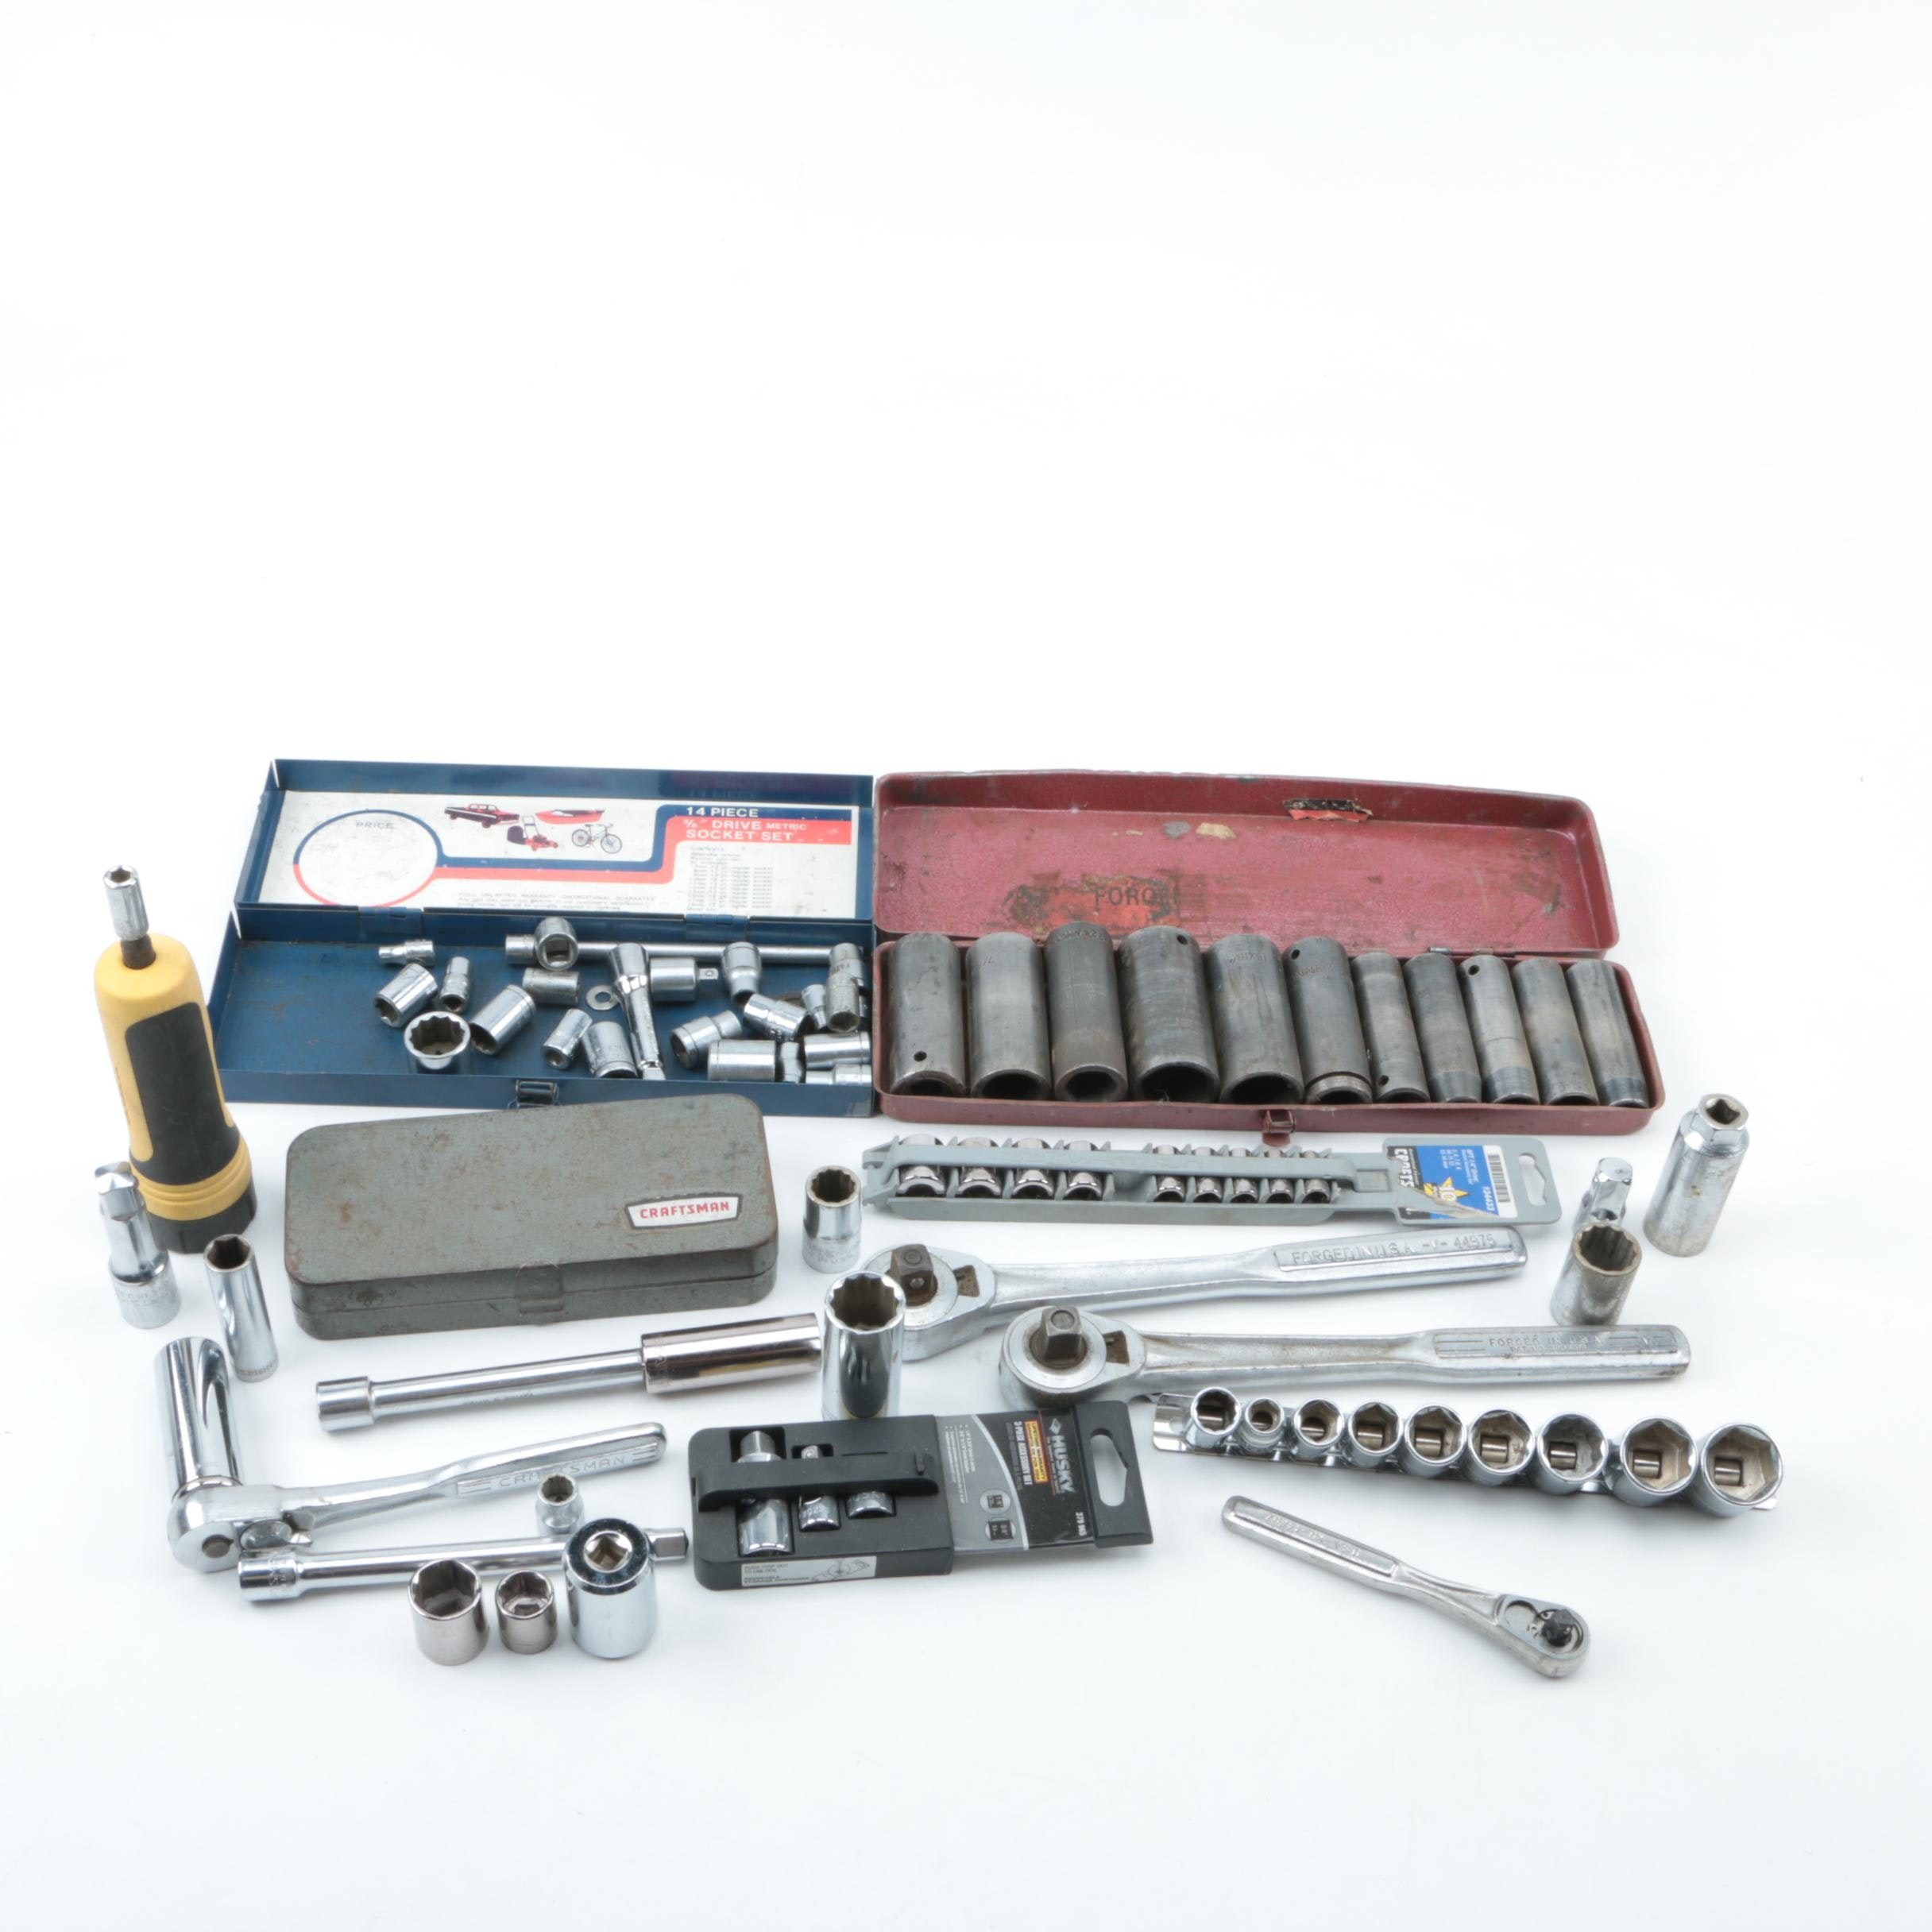 Socket Wrenches, Sockets and Accessories.